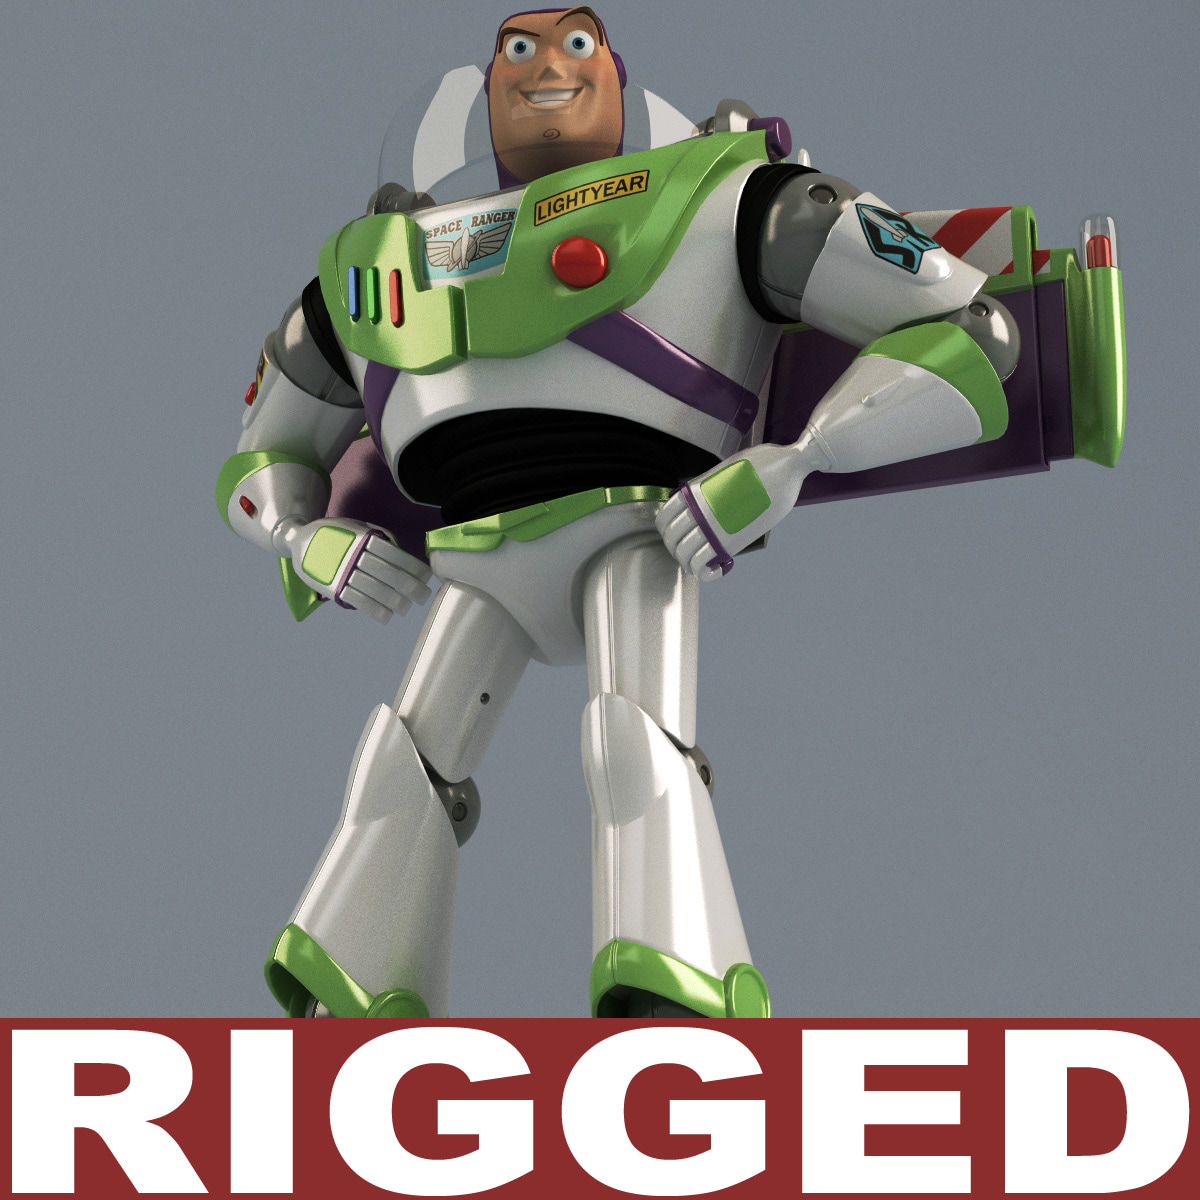 Buzz_Lightyear_Rigged_00.jpg